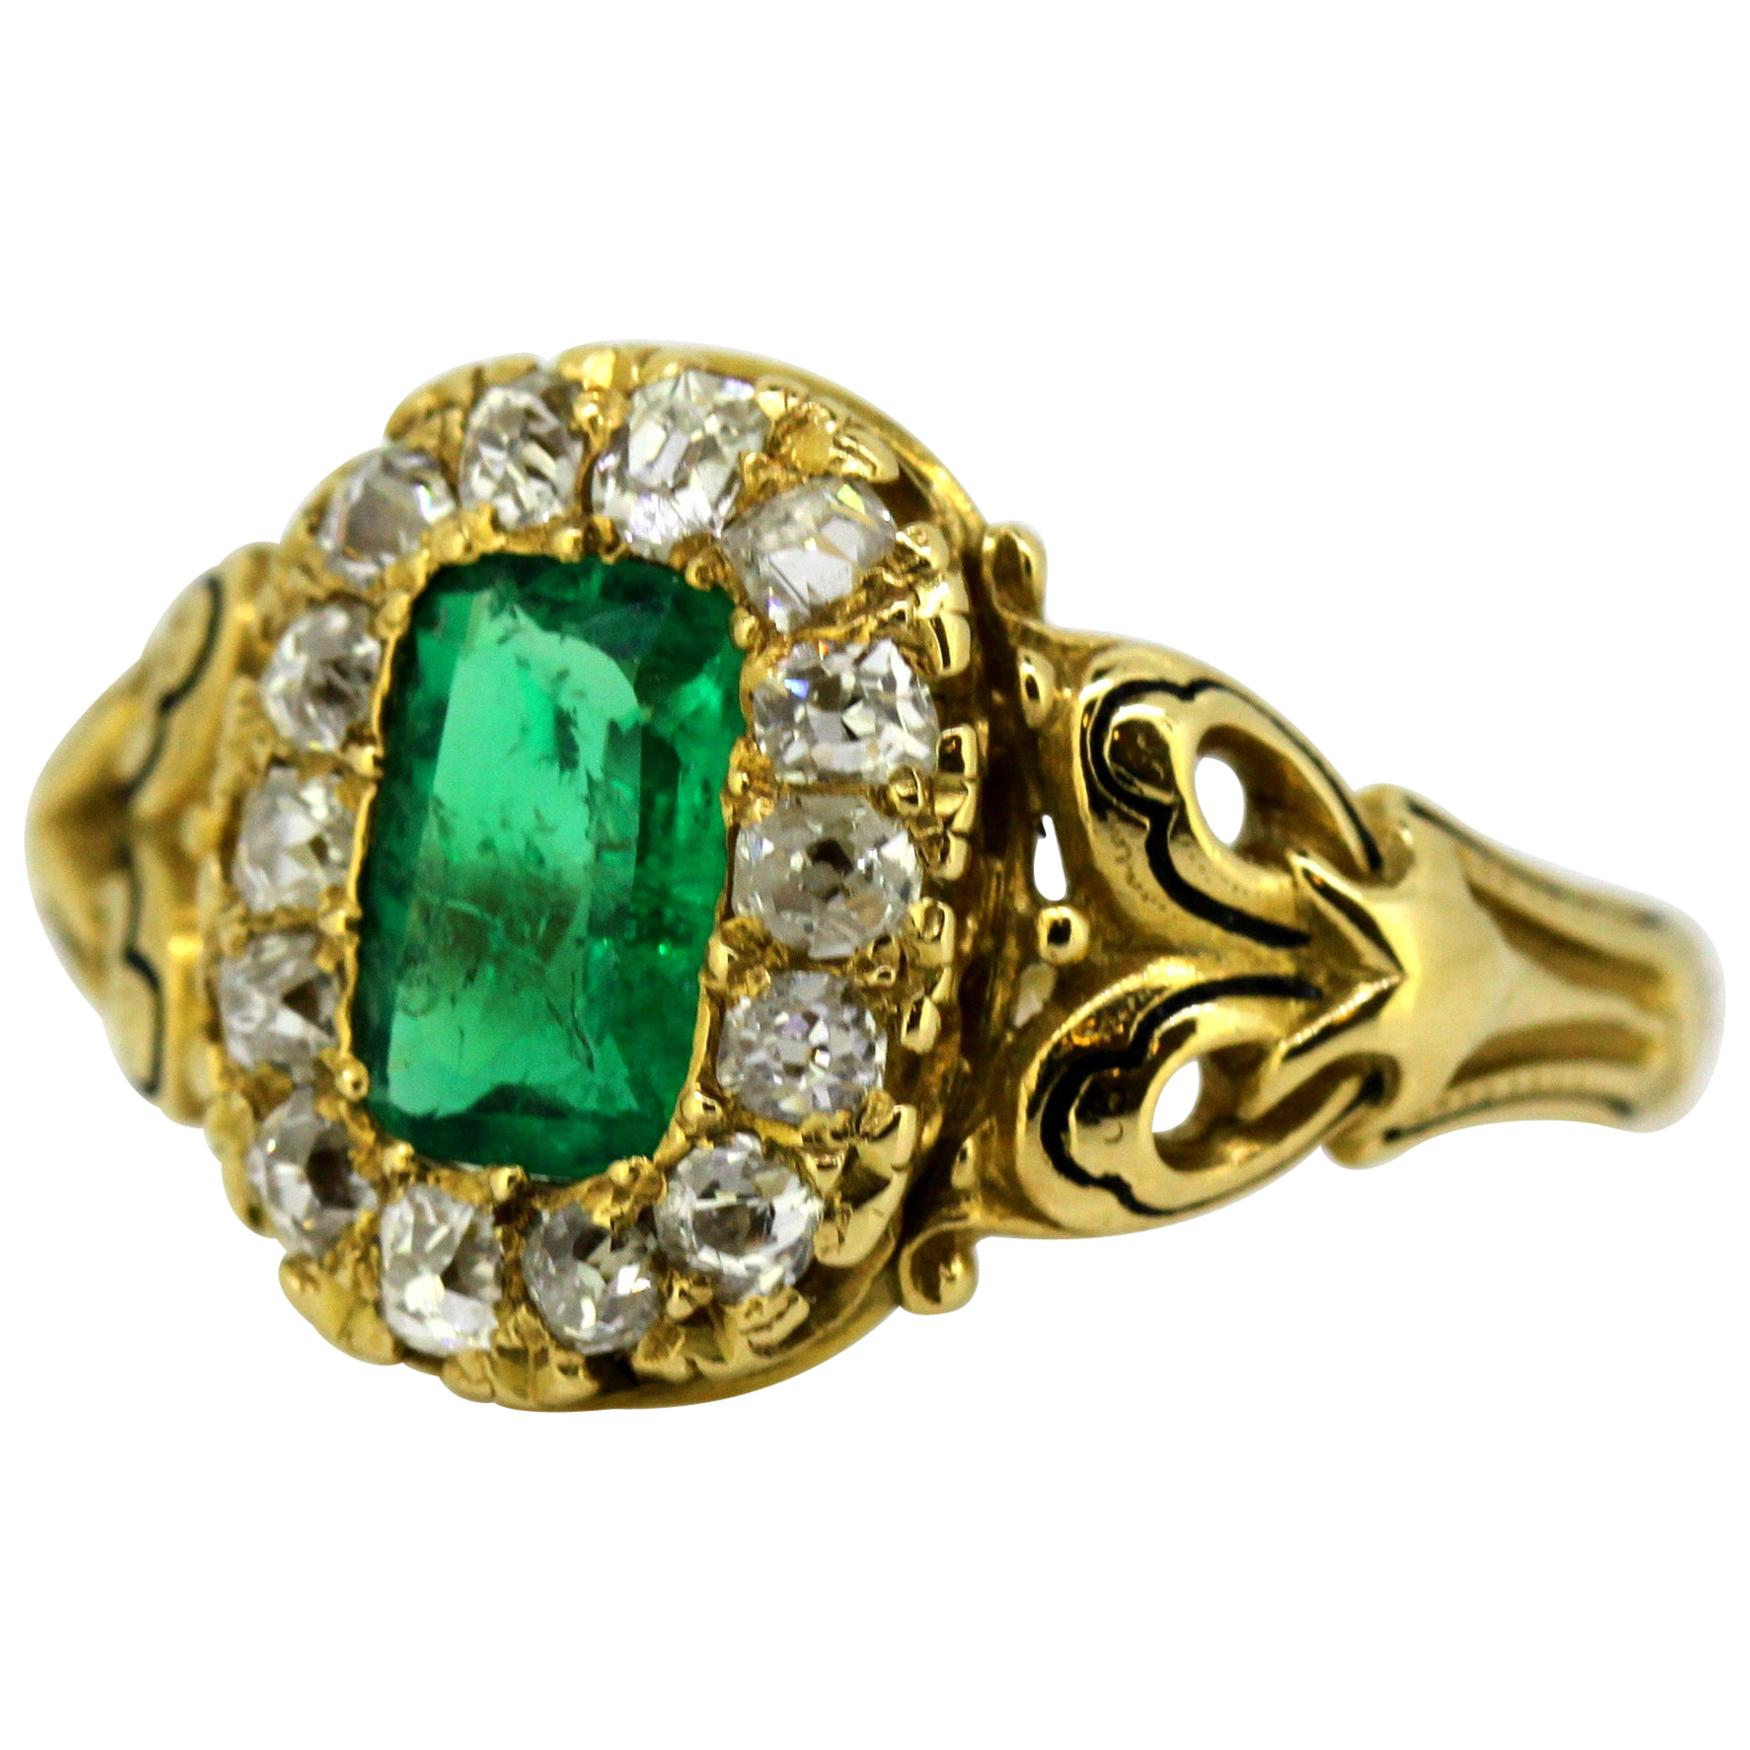 Antique French 18 Karat Gold Ladies Ring with Natural Emerald and Diamonds